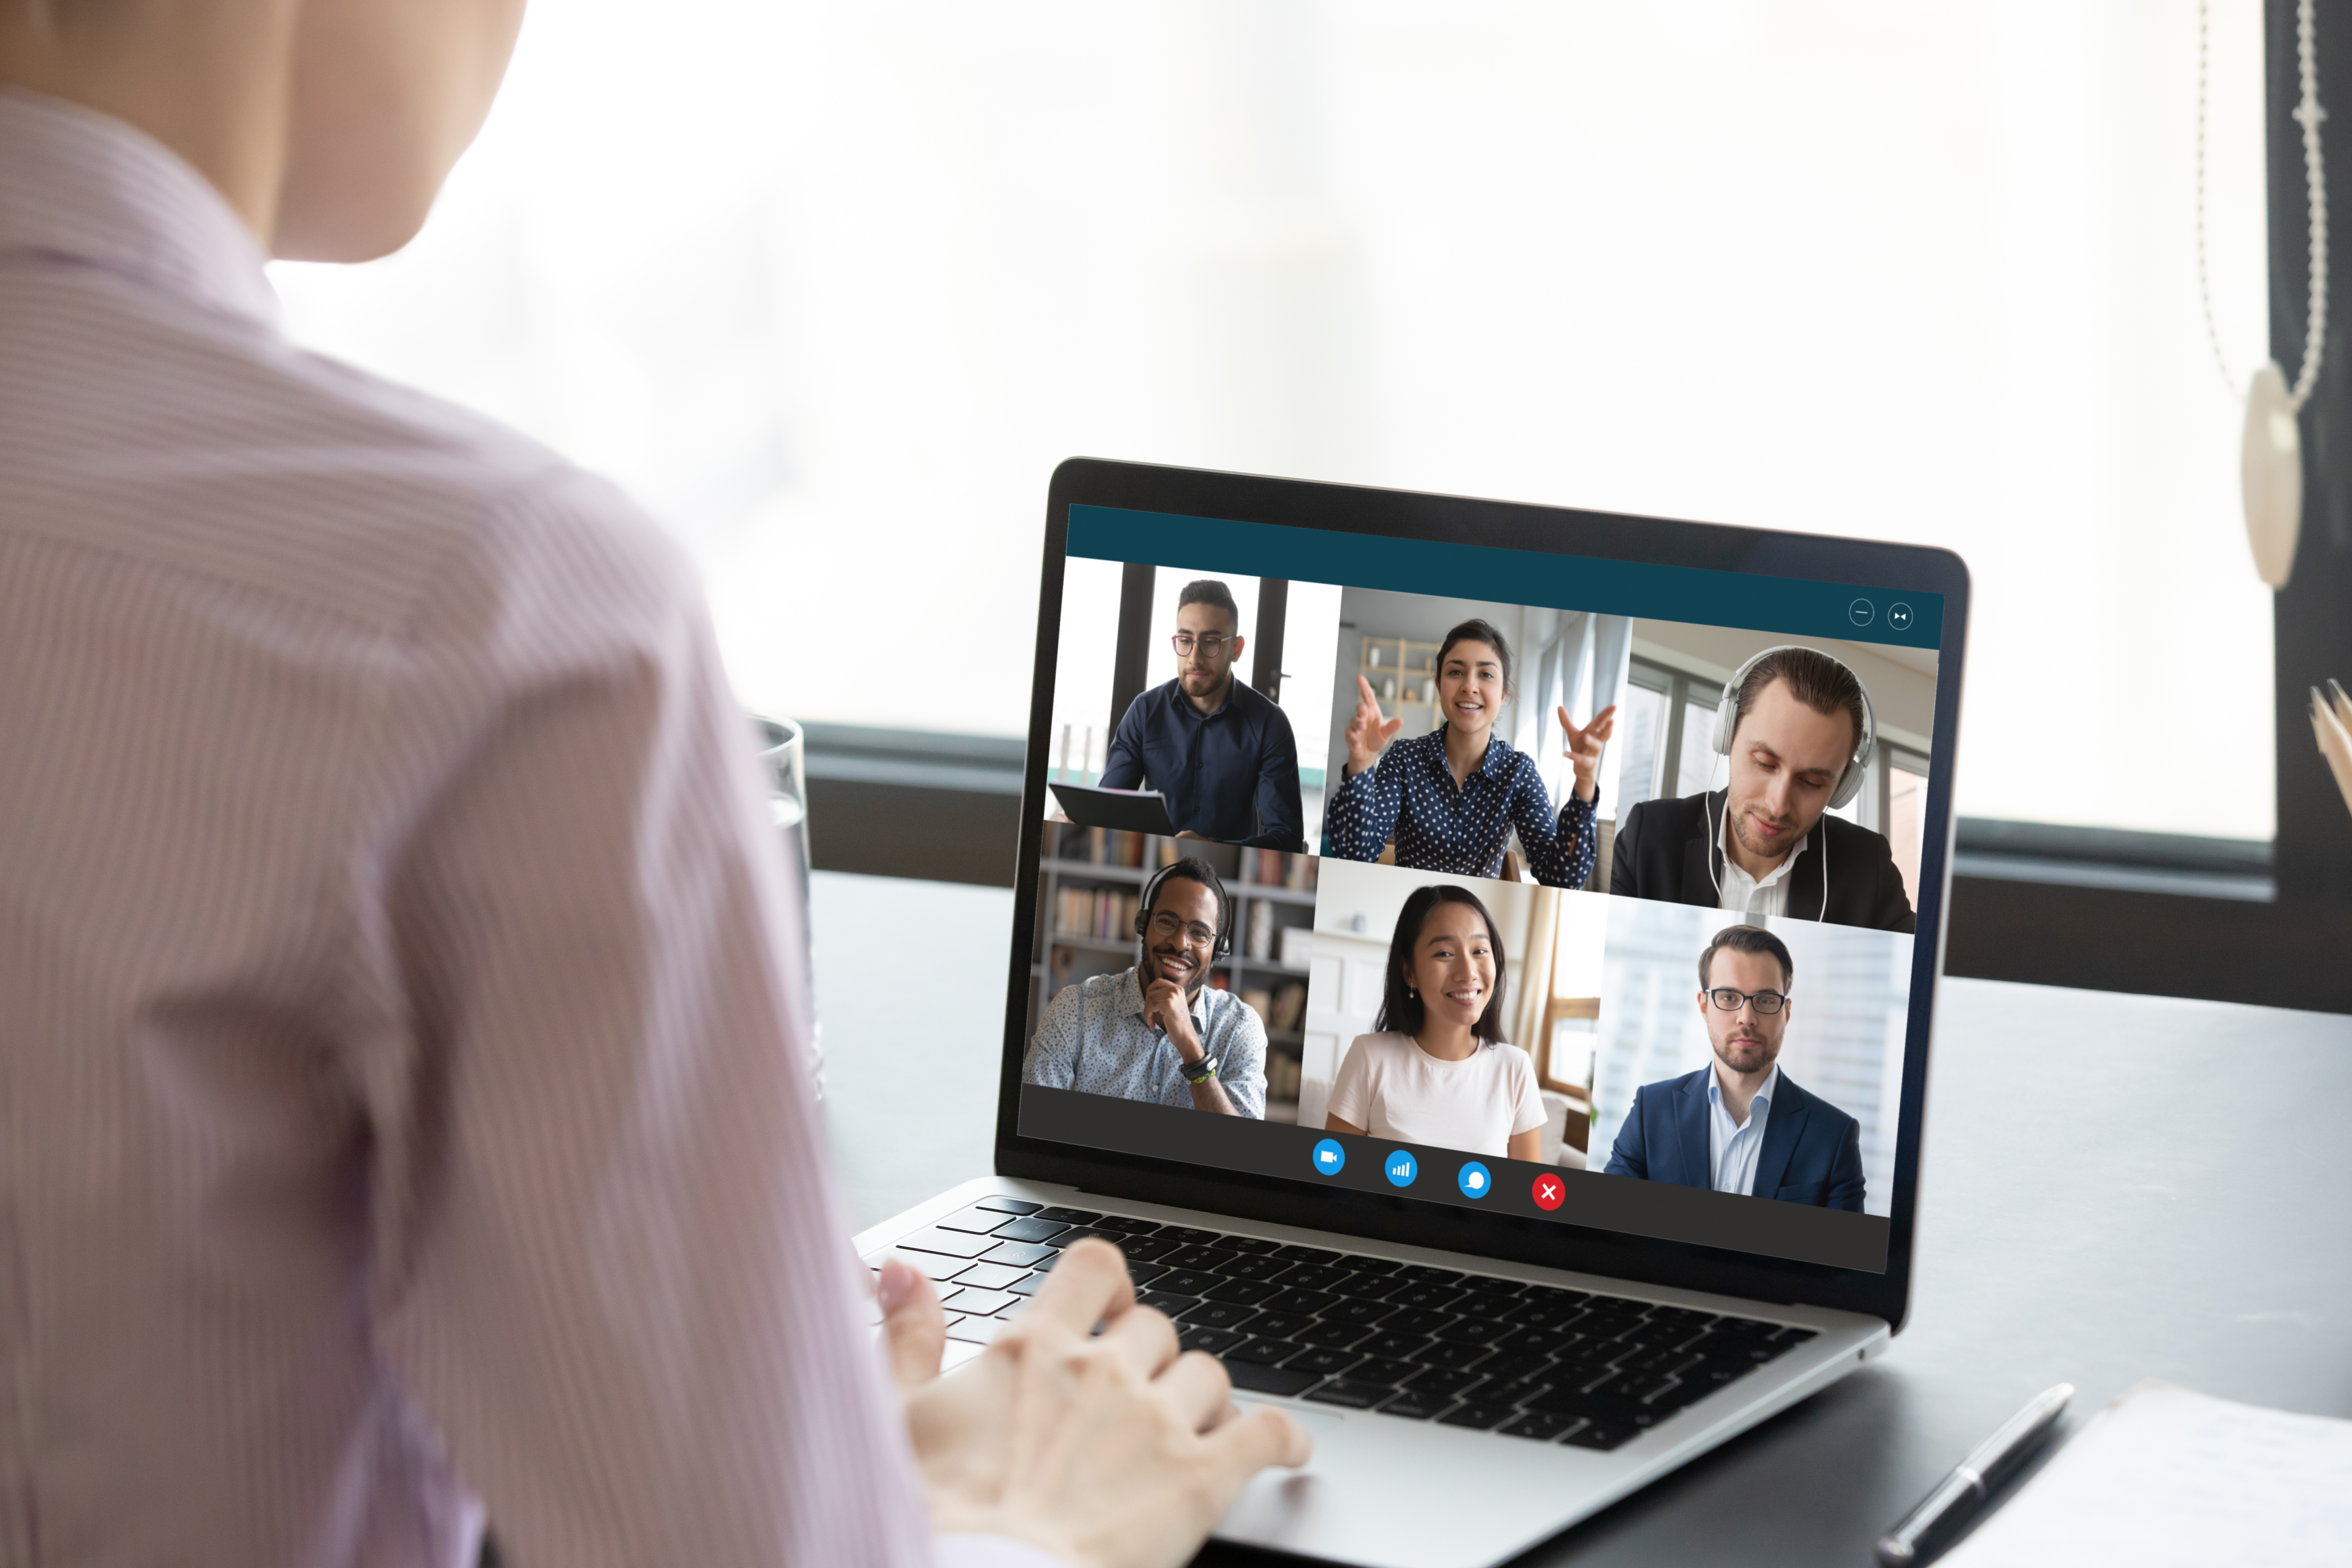 Computer screen view during group video call with multiethnic colleagues